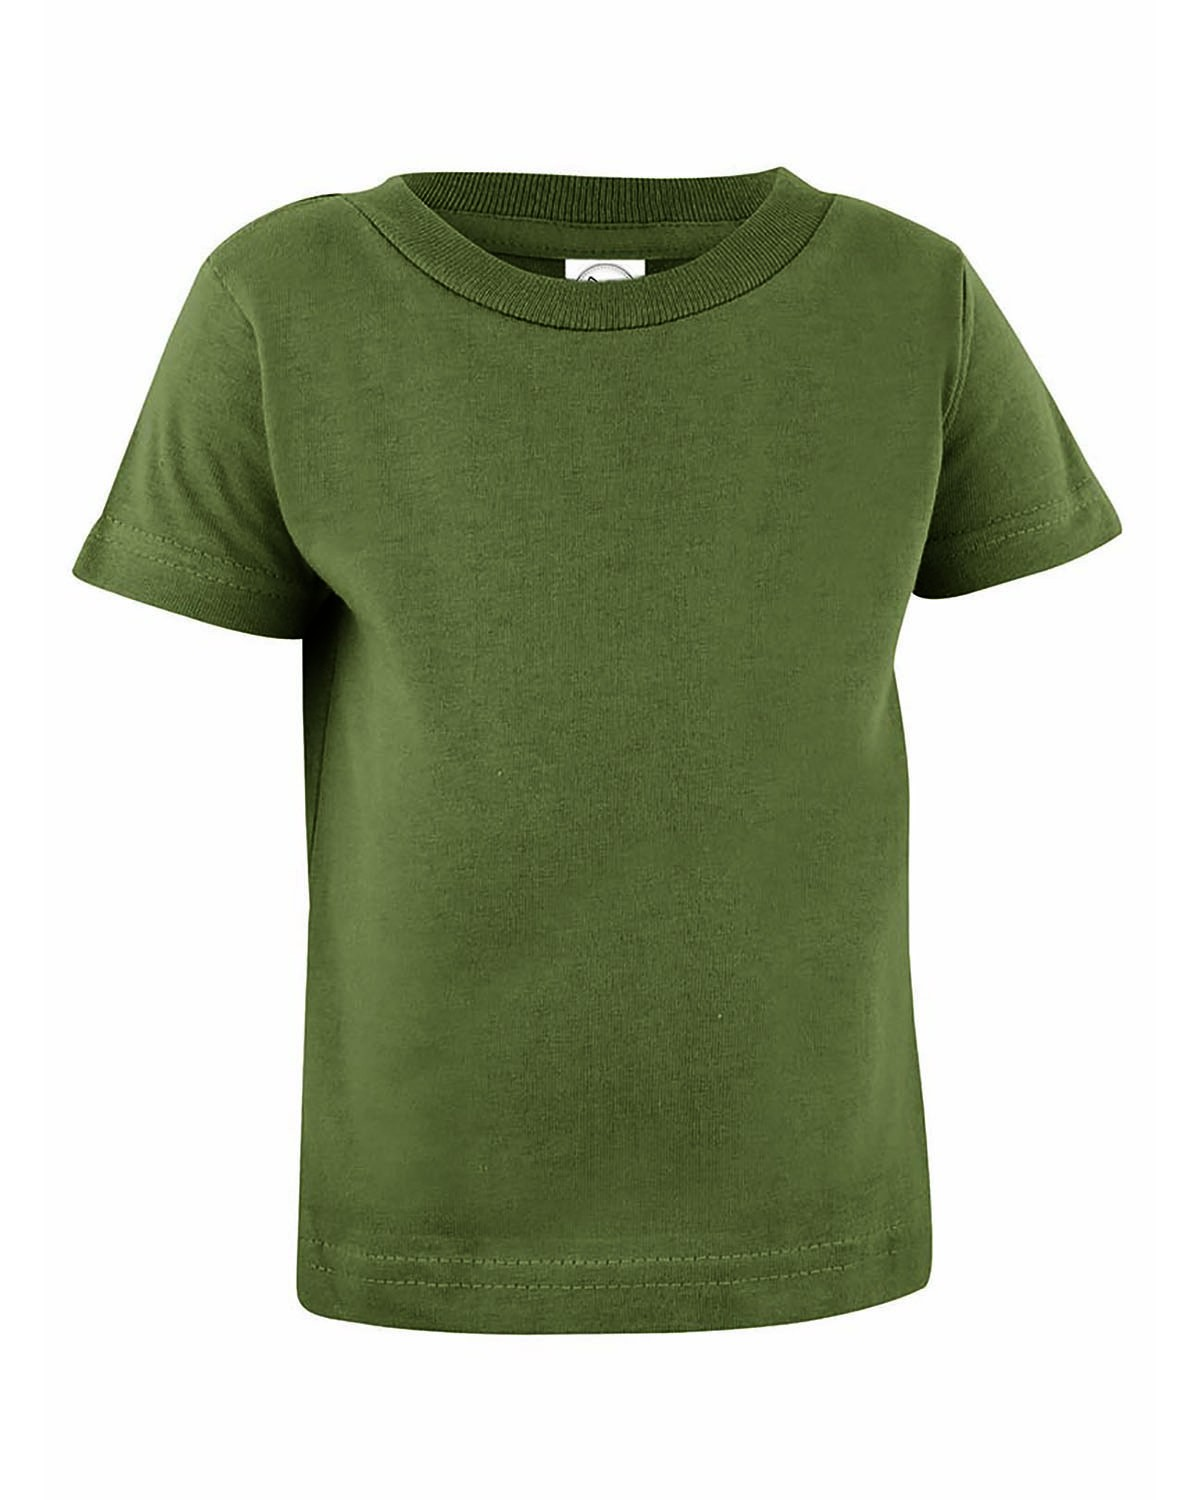 3401 Rabbit Skins MILITARY GREEN